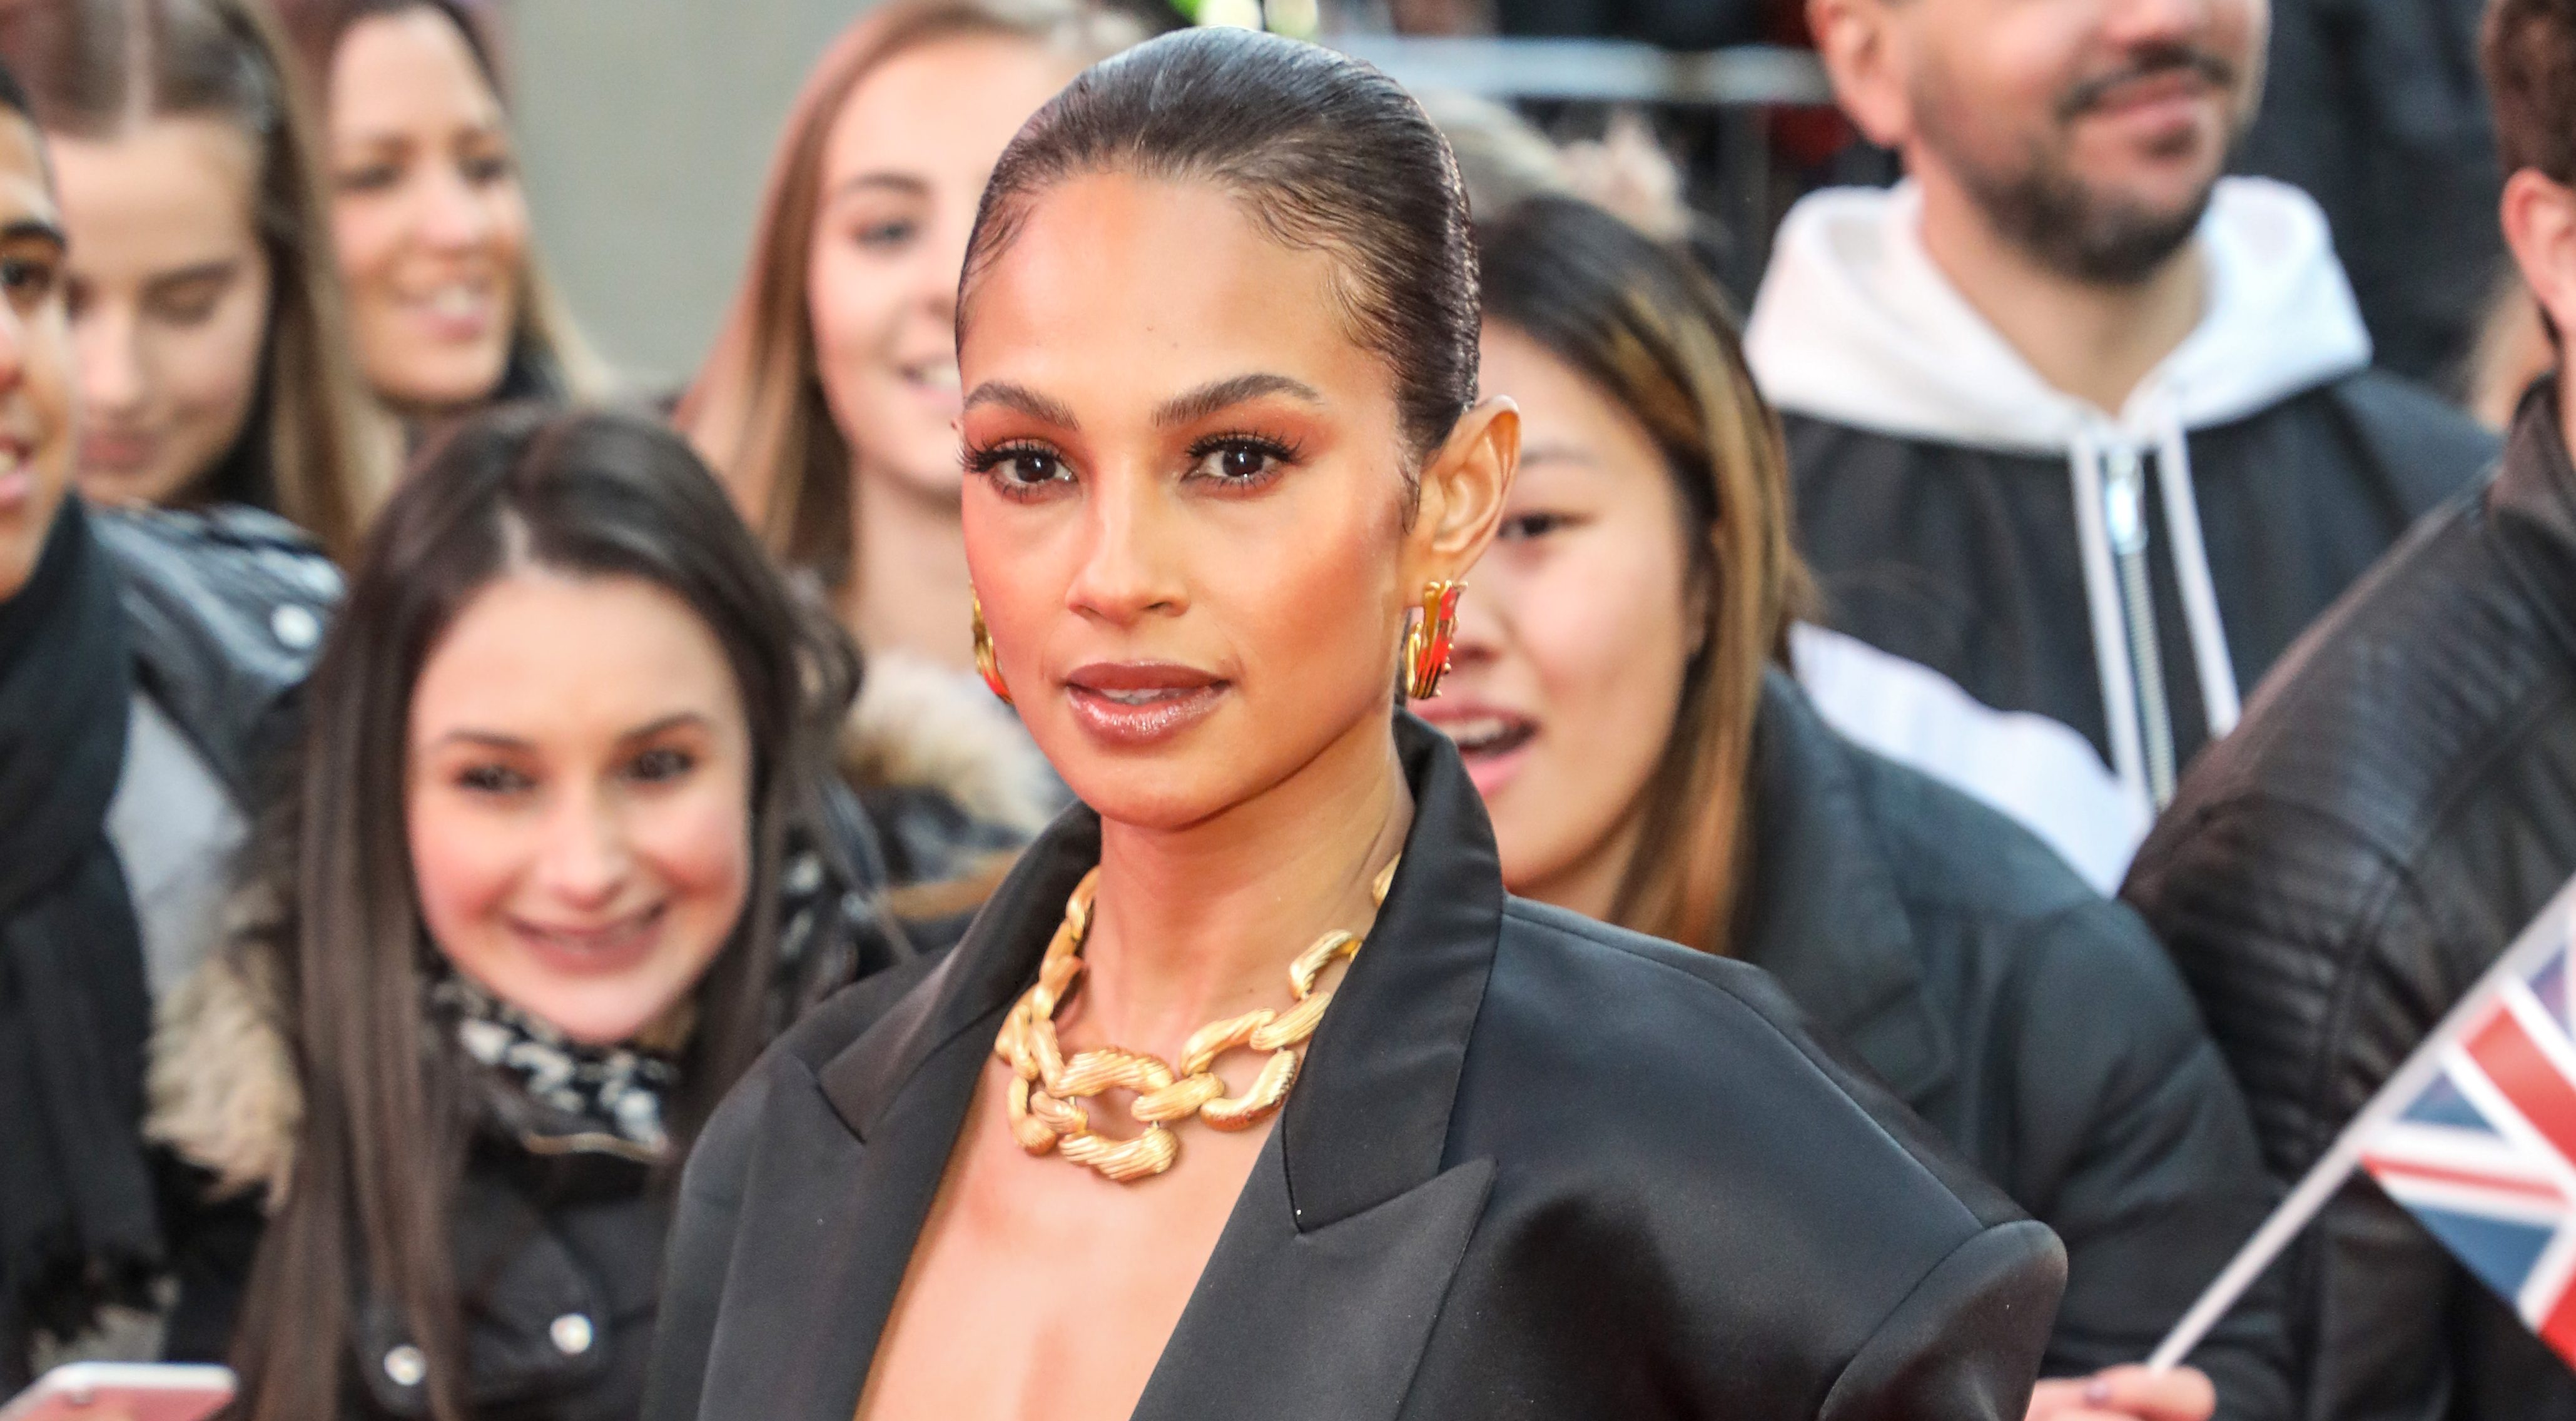 Alesha Dixon 'axed from modelling agency after snubbing high street brands'